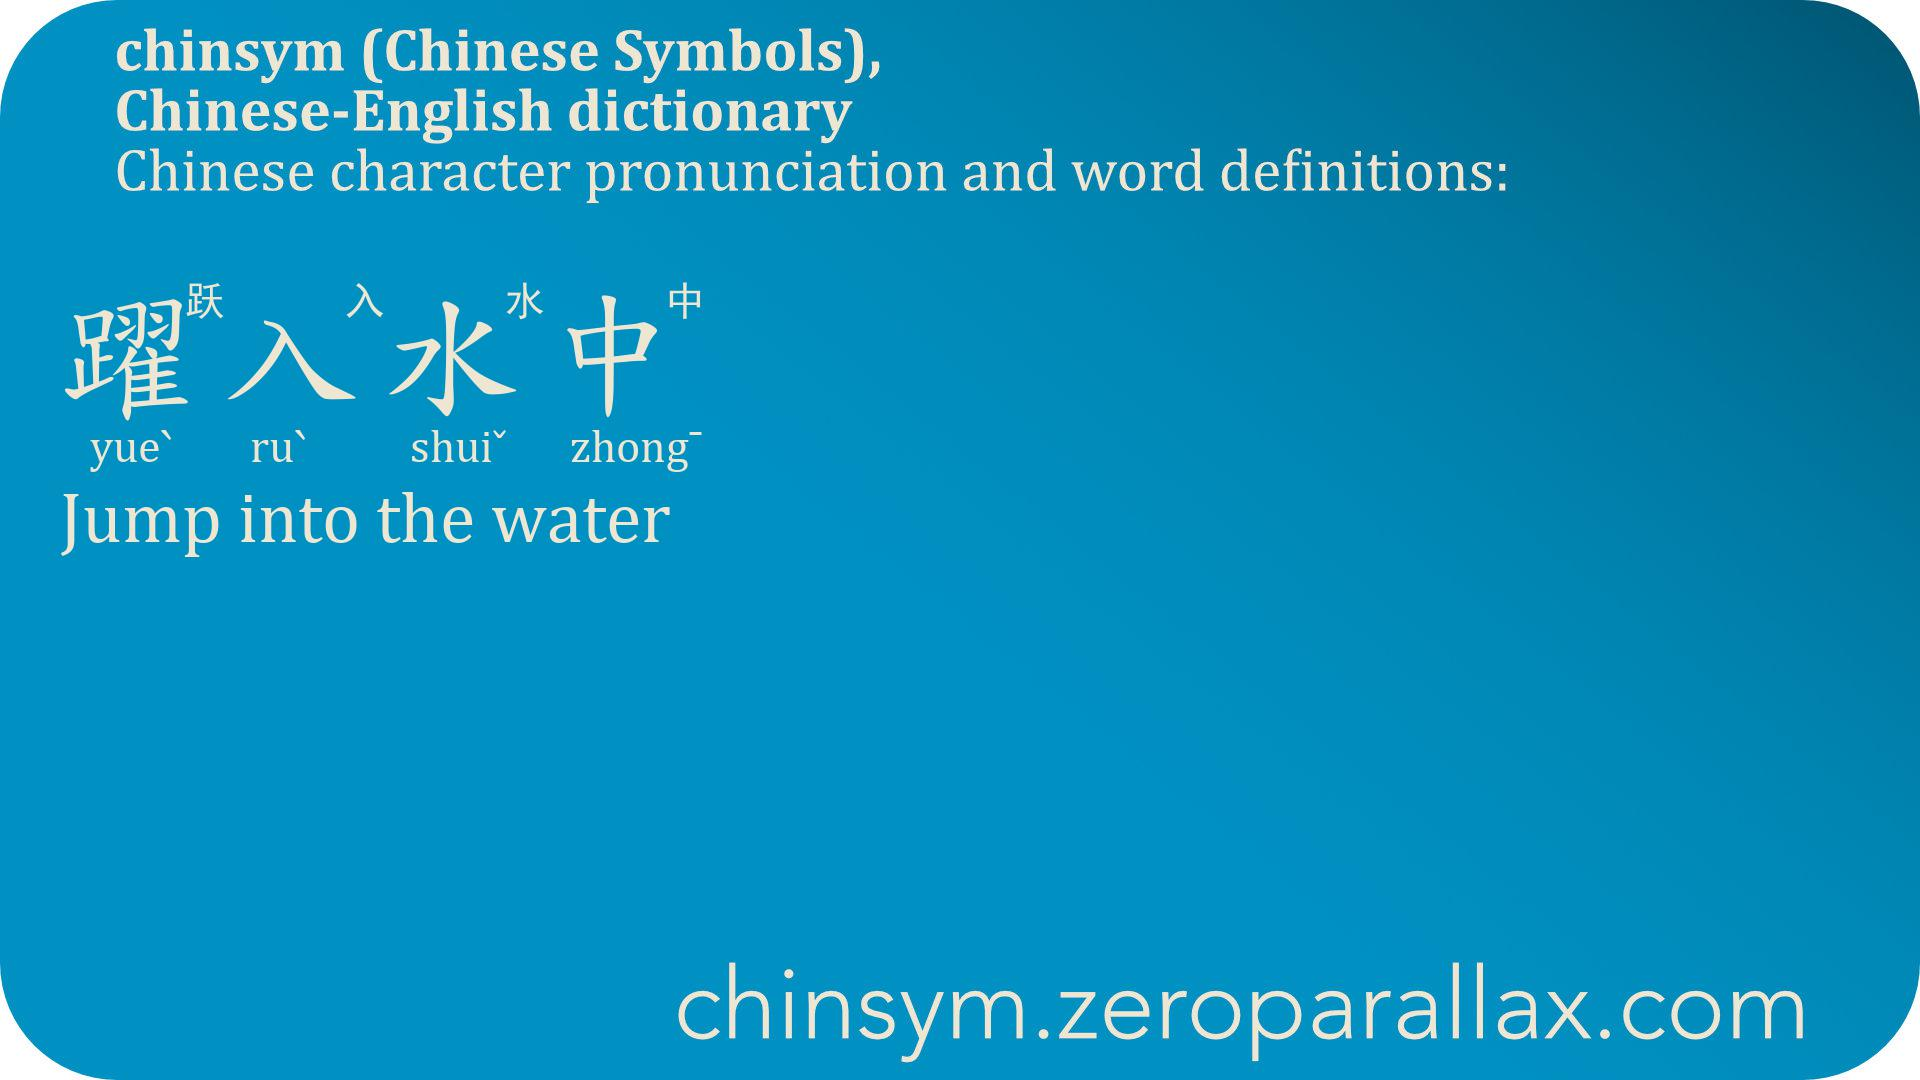 躍入水中  (yueˋ ruˋ shuiˇ zhong¯) 跃入水中 : Jump into the water. chinsym.zeroparallax.com